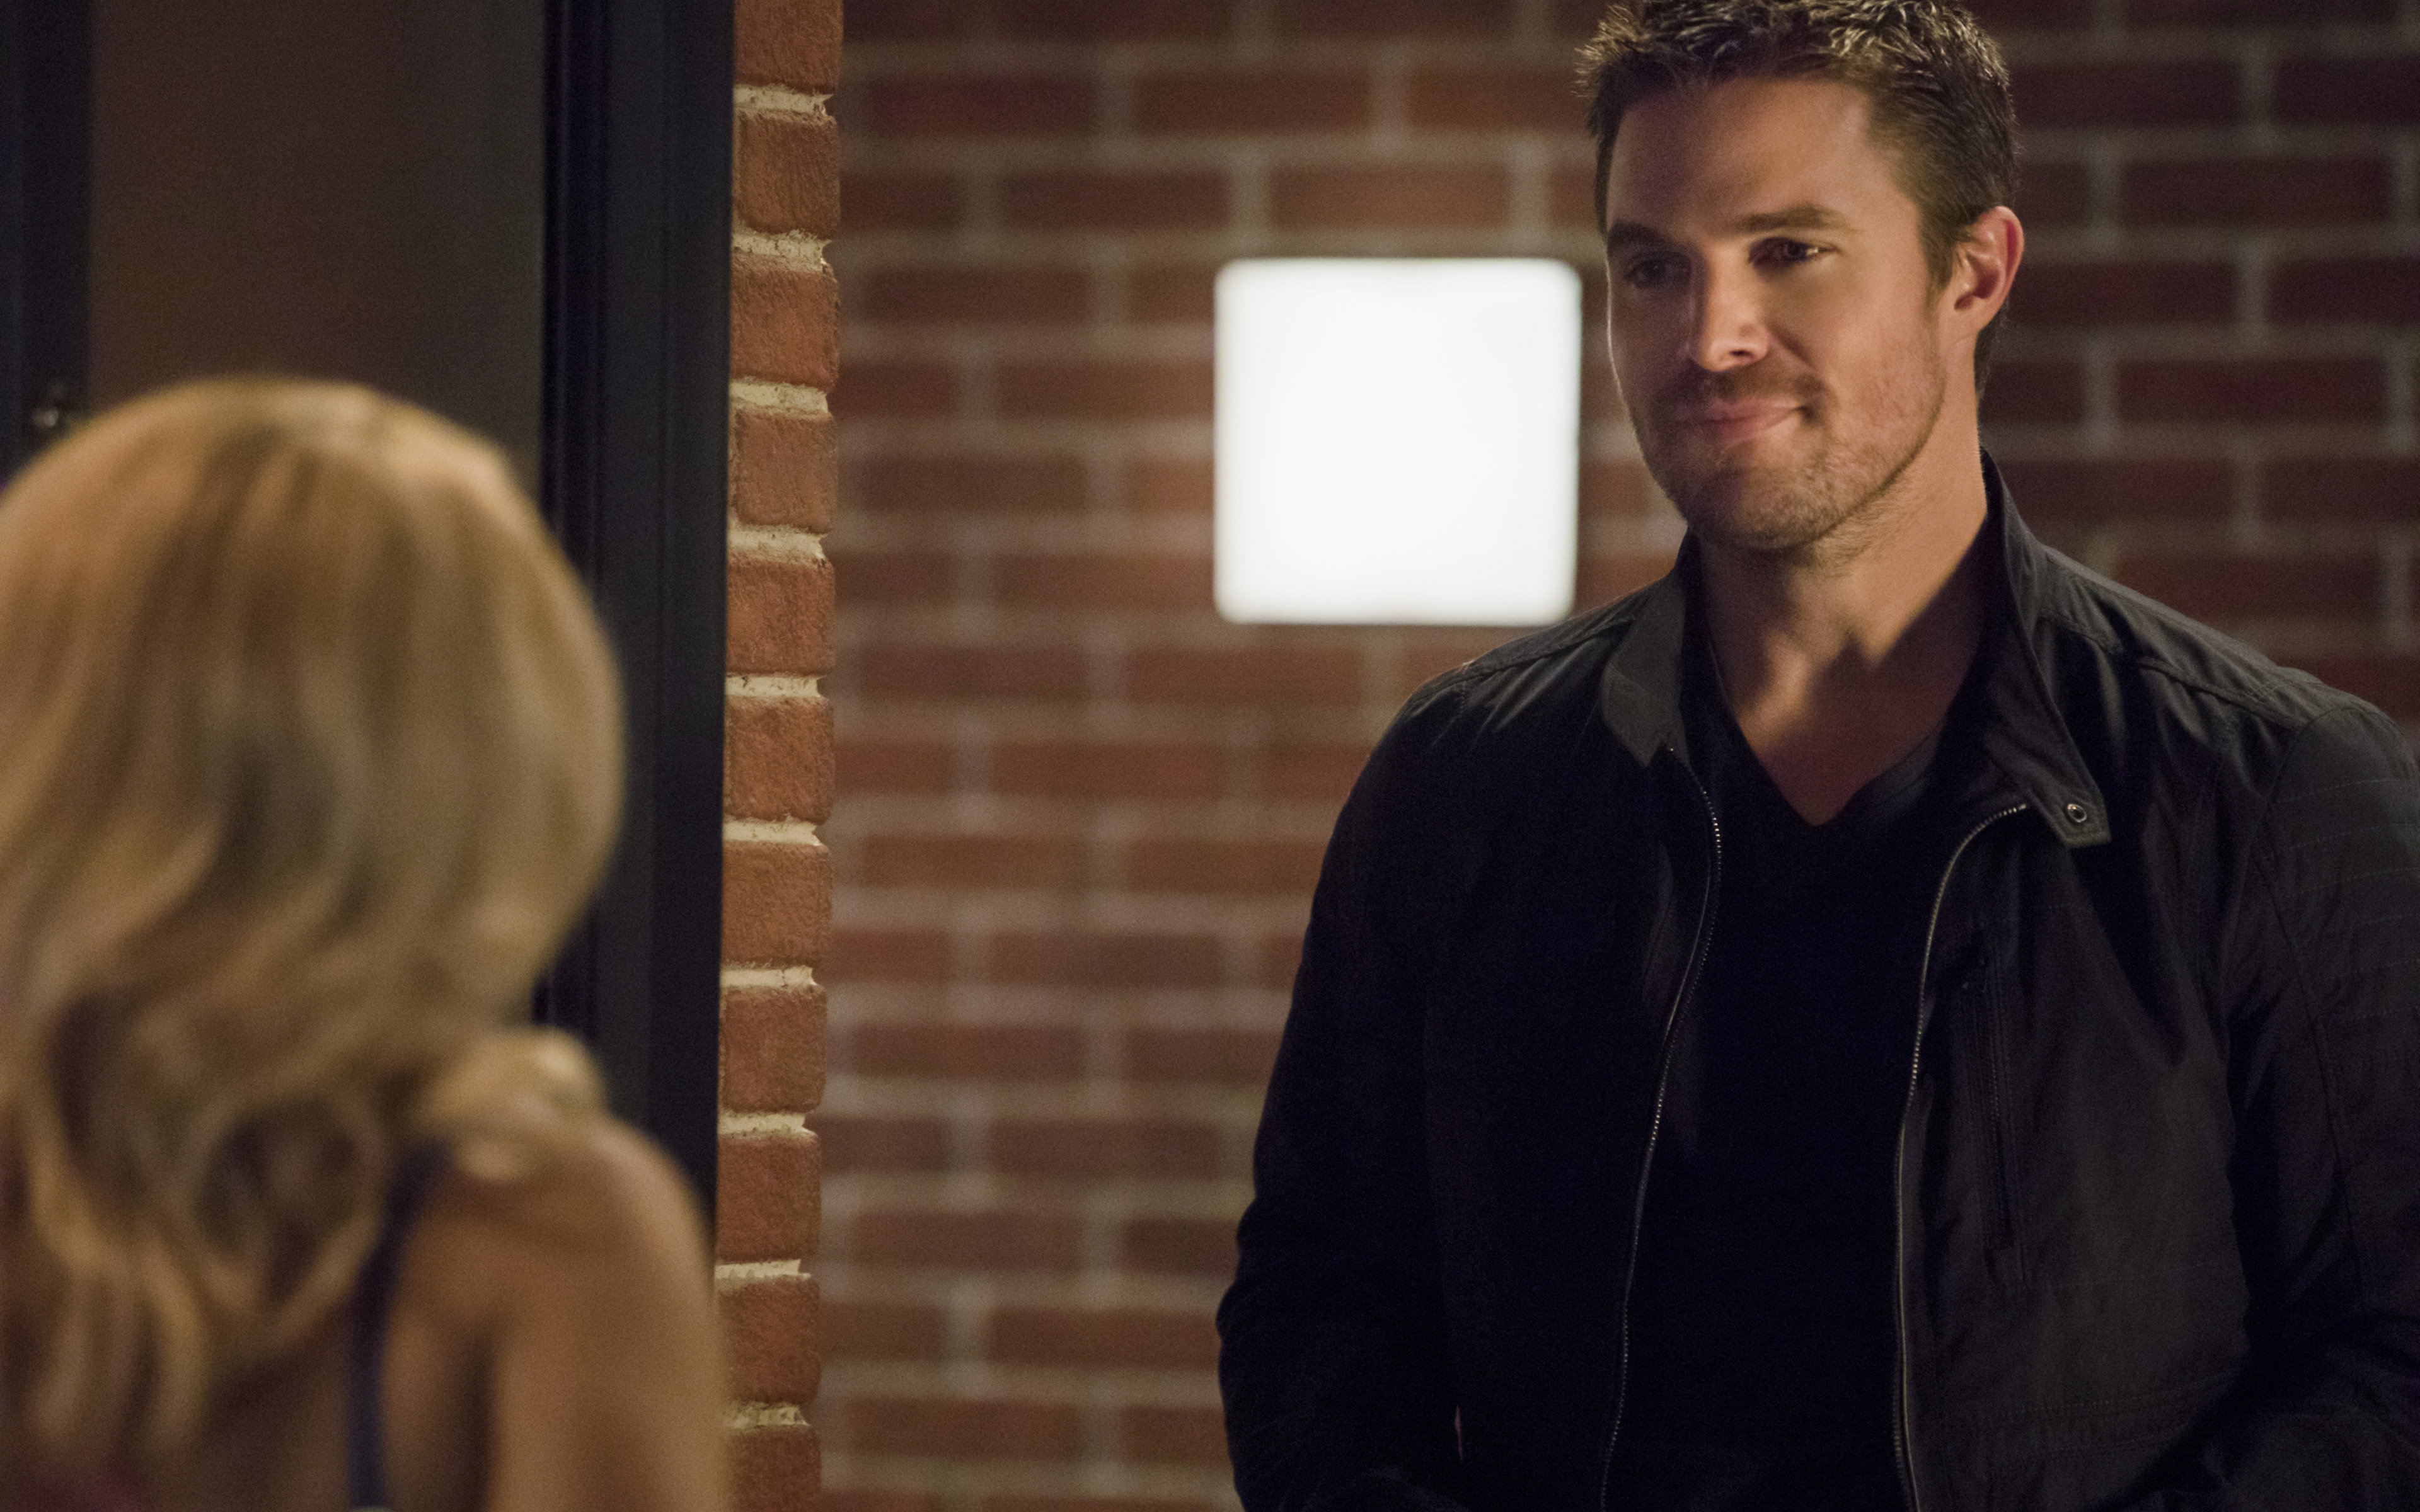 oliver-queen-arrow-season-6-2017-w7.jpg